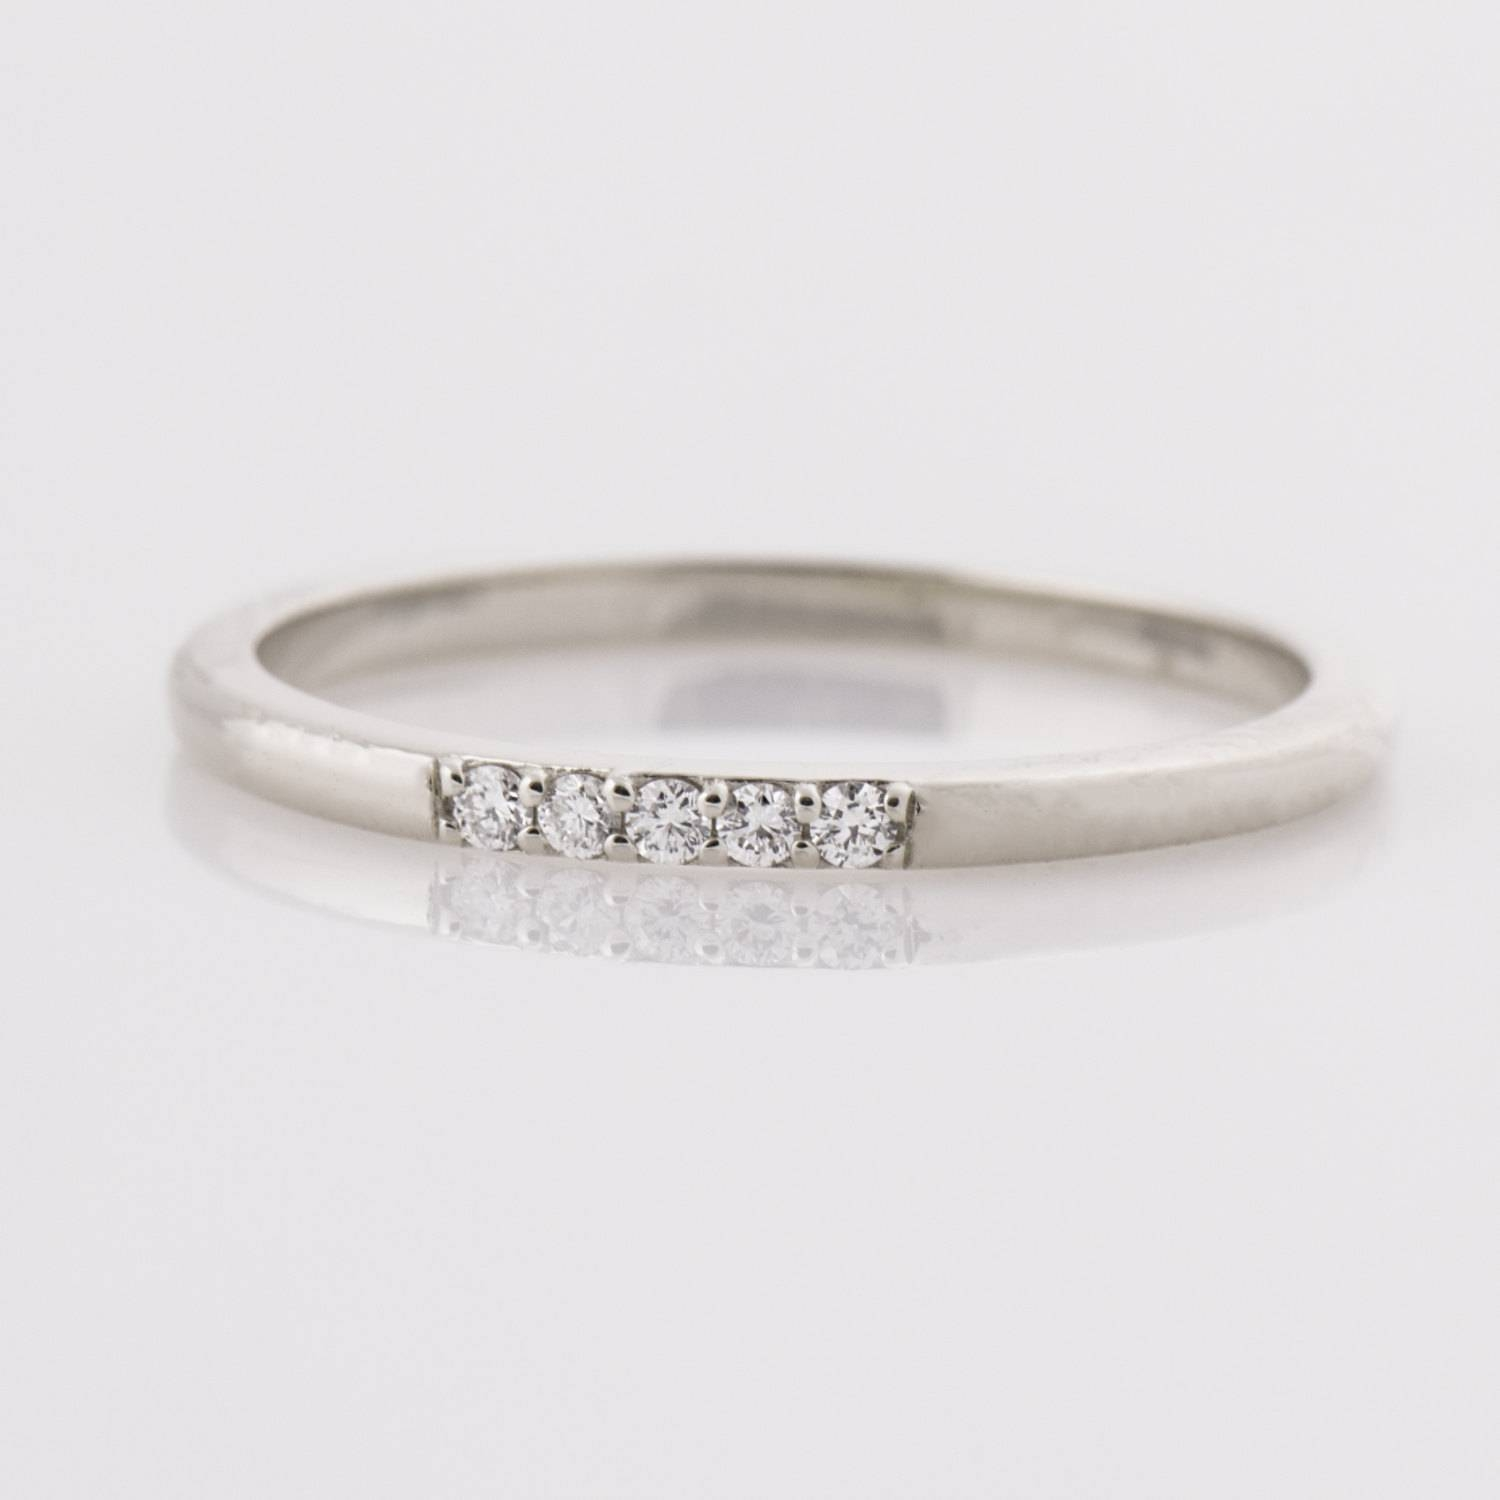 Thin Diamond Ring 14k White Gold Stacking Ring Dainty Intended For Thin Wedding Bands With Diamonds (View 11 of 15)